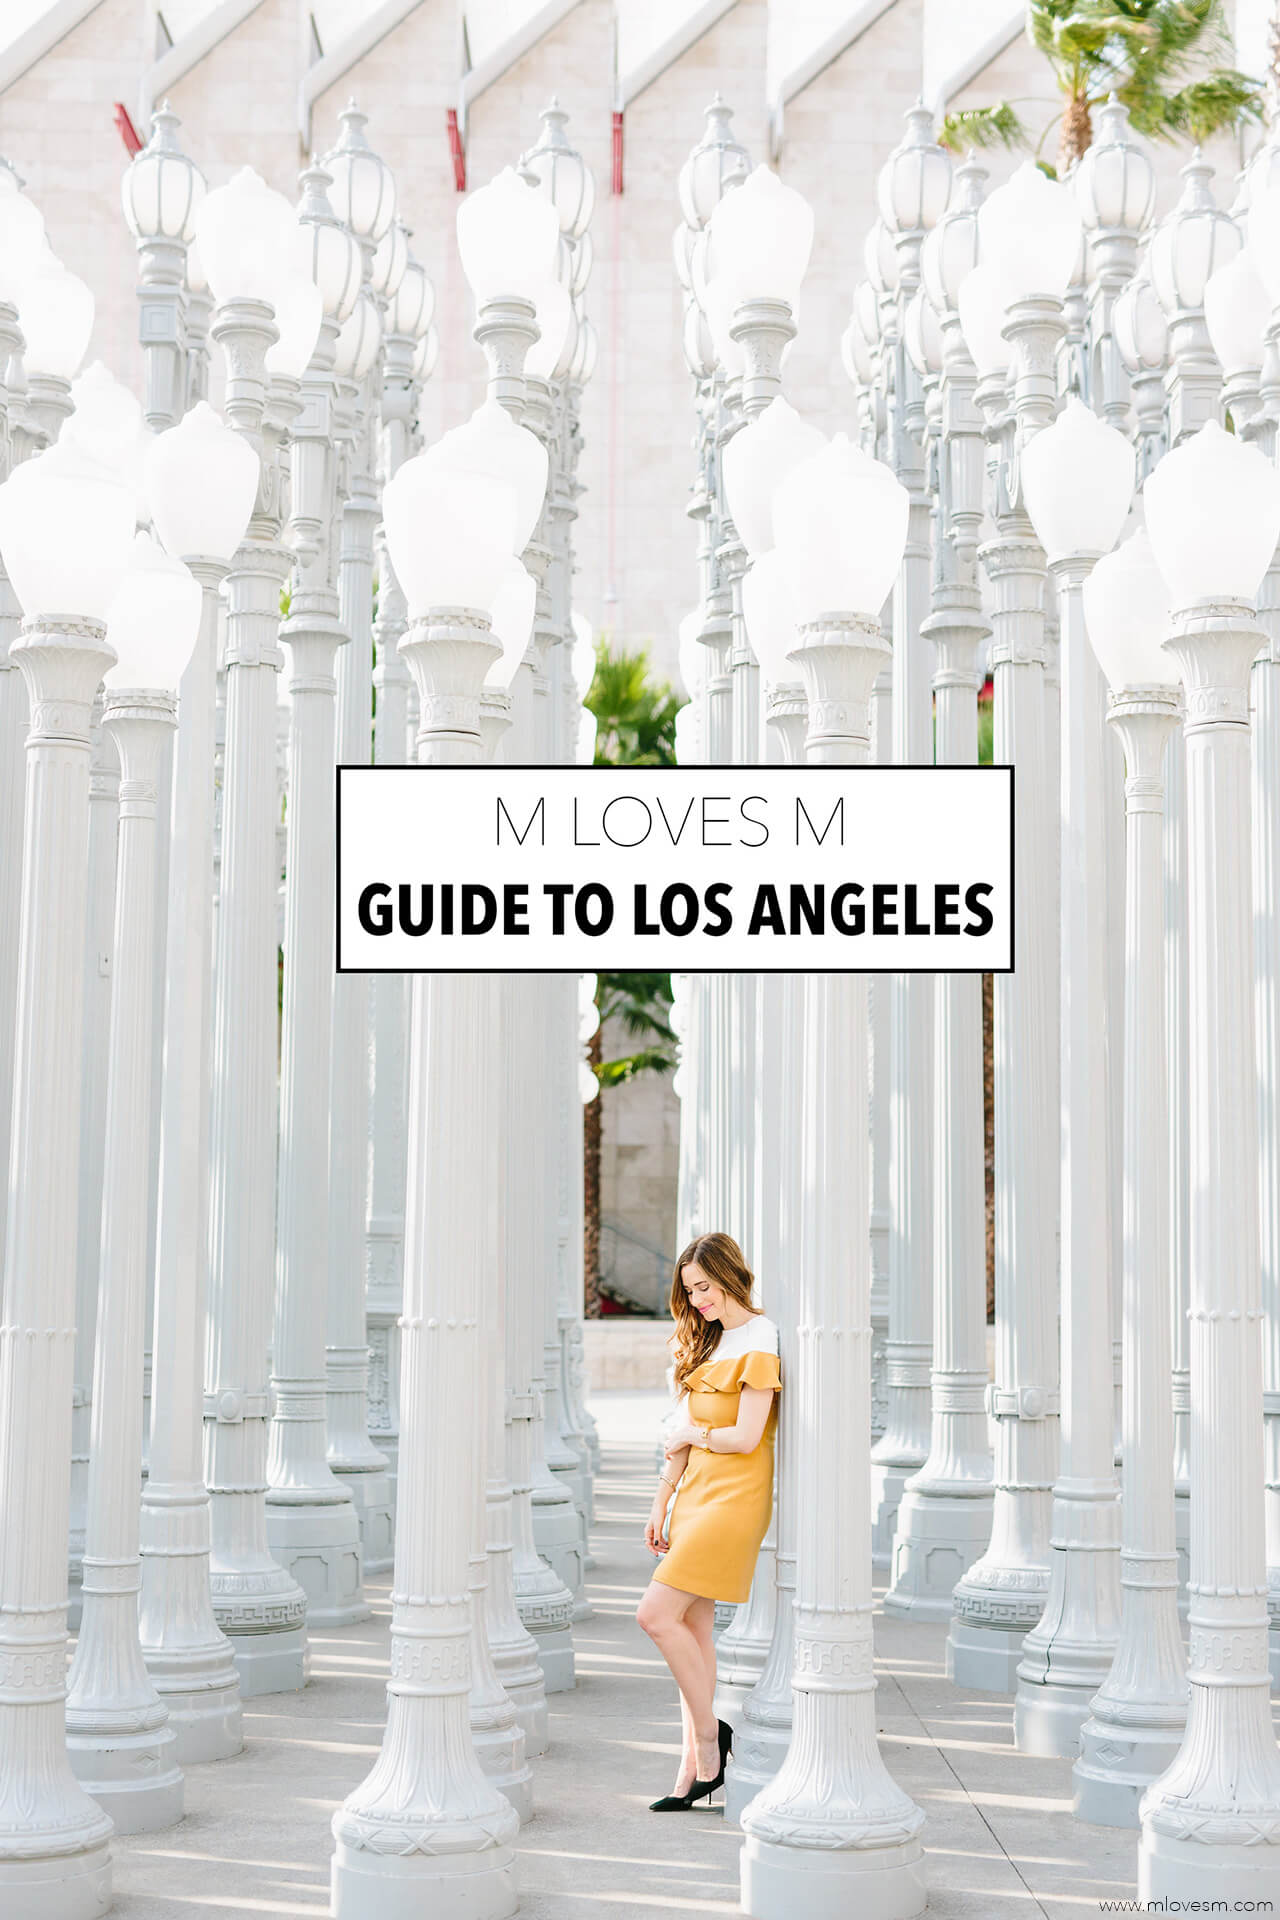 The M Loves M Guide to Los Angeles- restaurants to visit and things to do in the City of Angels - M Loves M @marmar